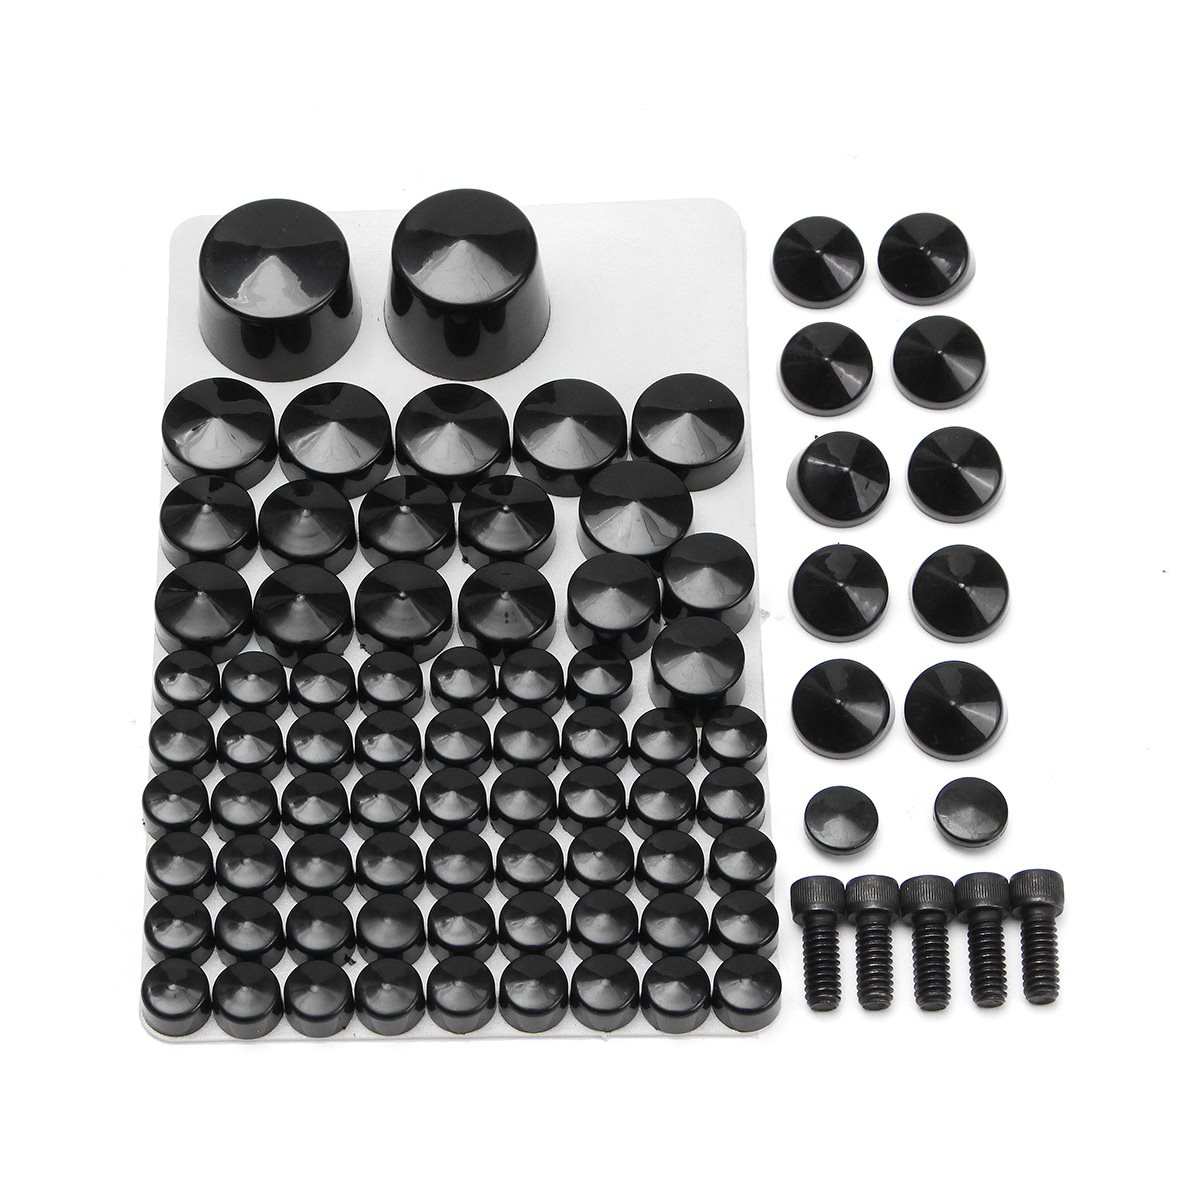 81 Pcs Chrome Motorcycle Toppers Cover Bolts For Harley Softail/Twin/Cam Models  2007-2013 ABS Plastic Black chrome custom motorcycle skeleton mirrors for harley davidson softail heritage classic